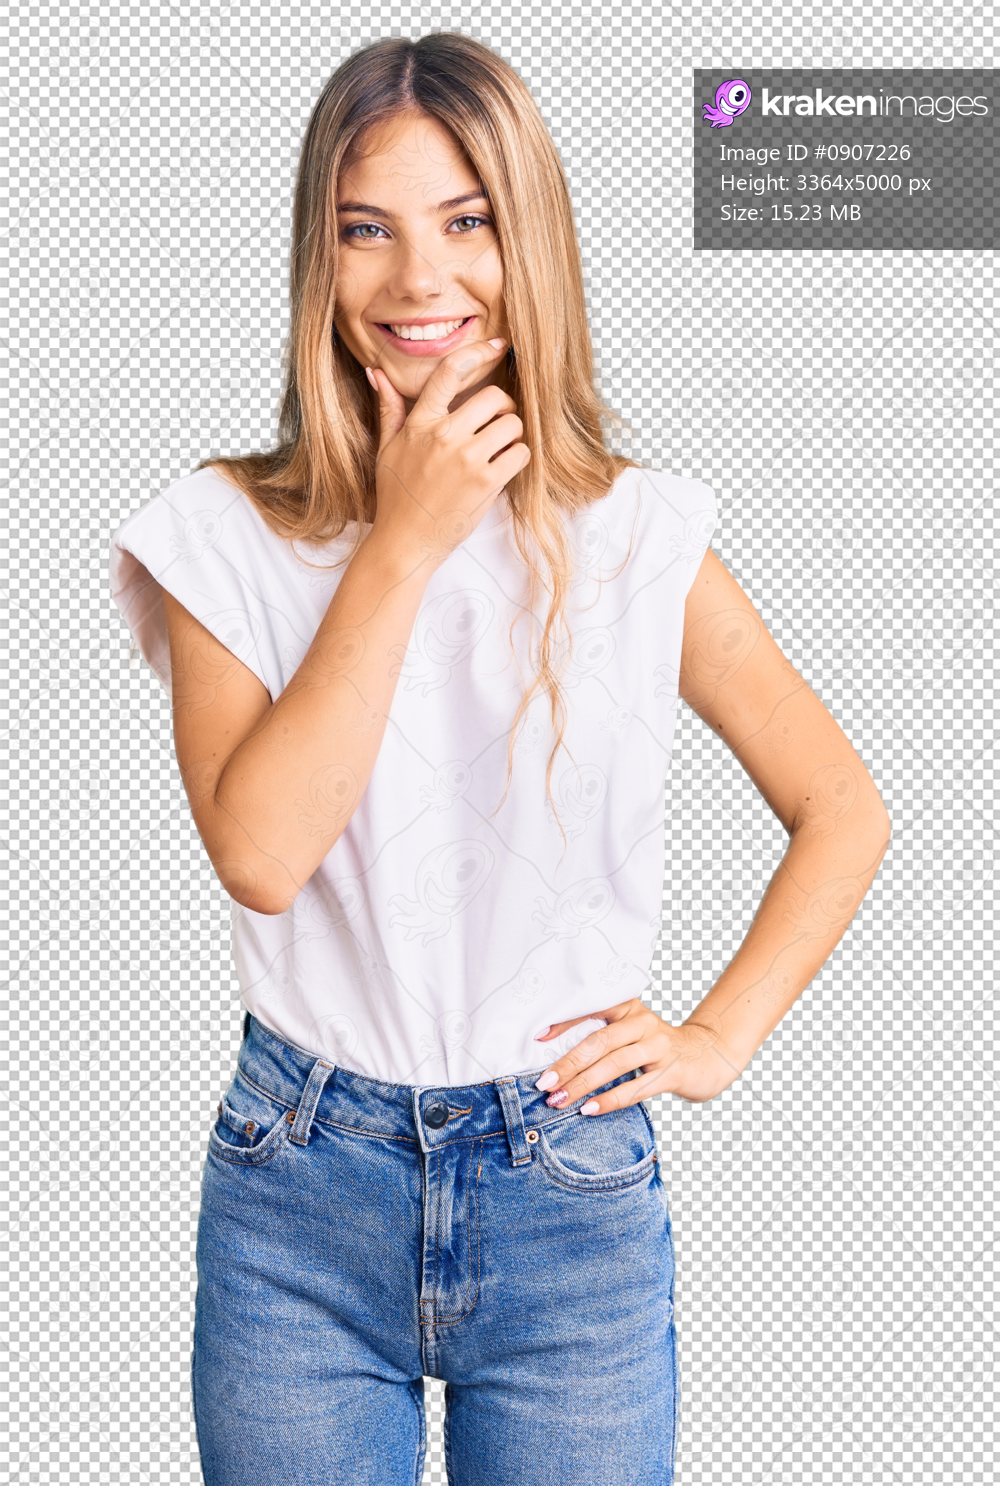 Beautiful caucasian woman with blonde hair wearing casual white tshirt looking confident at the camera smiling with crossed arms and hand raised on chin. thinking positive.